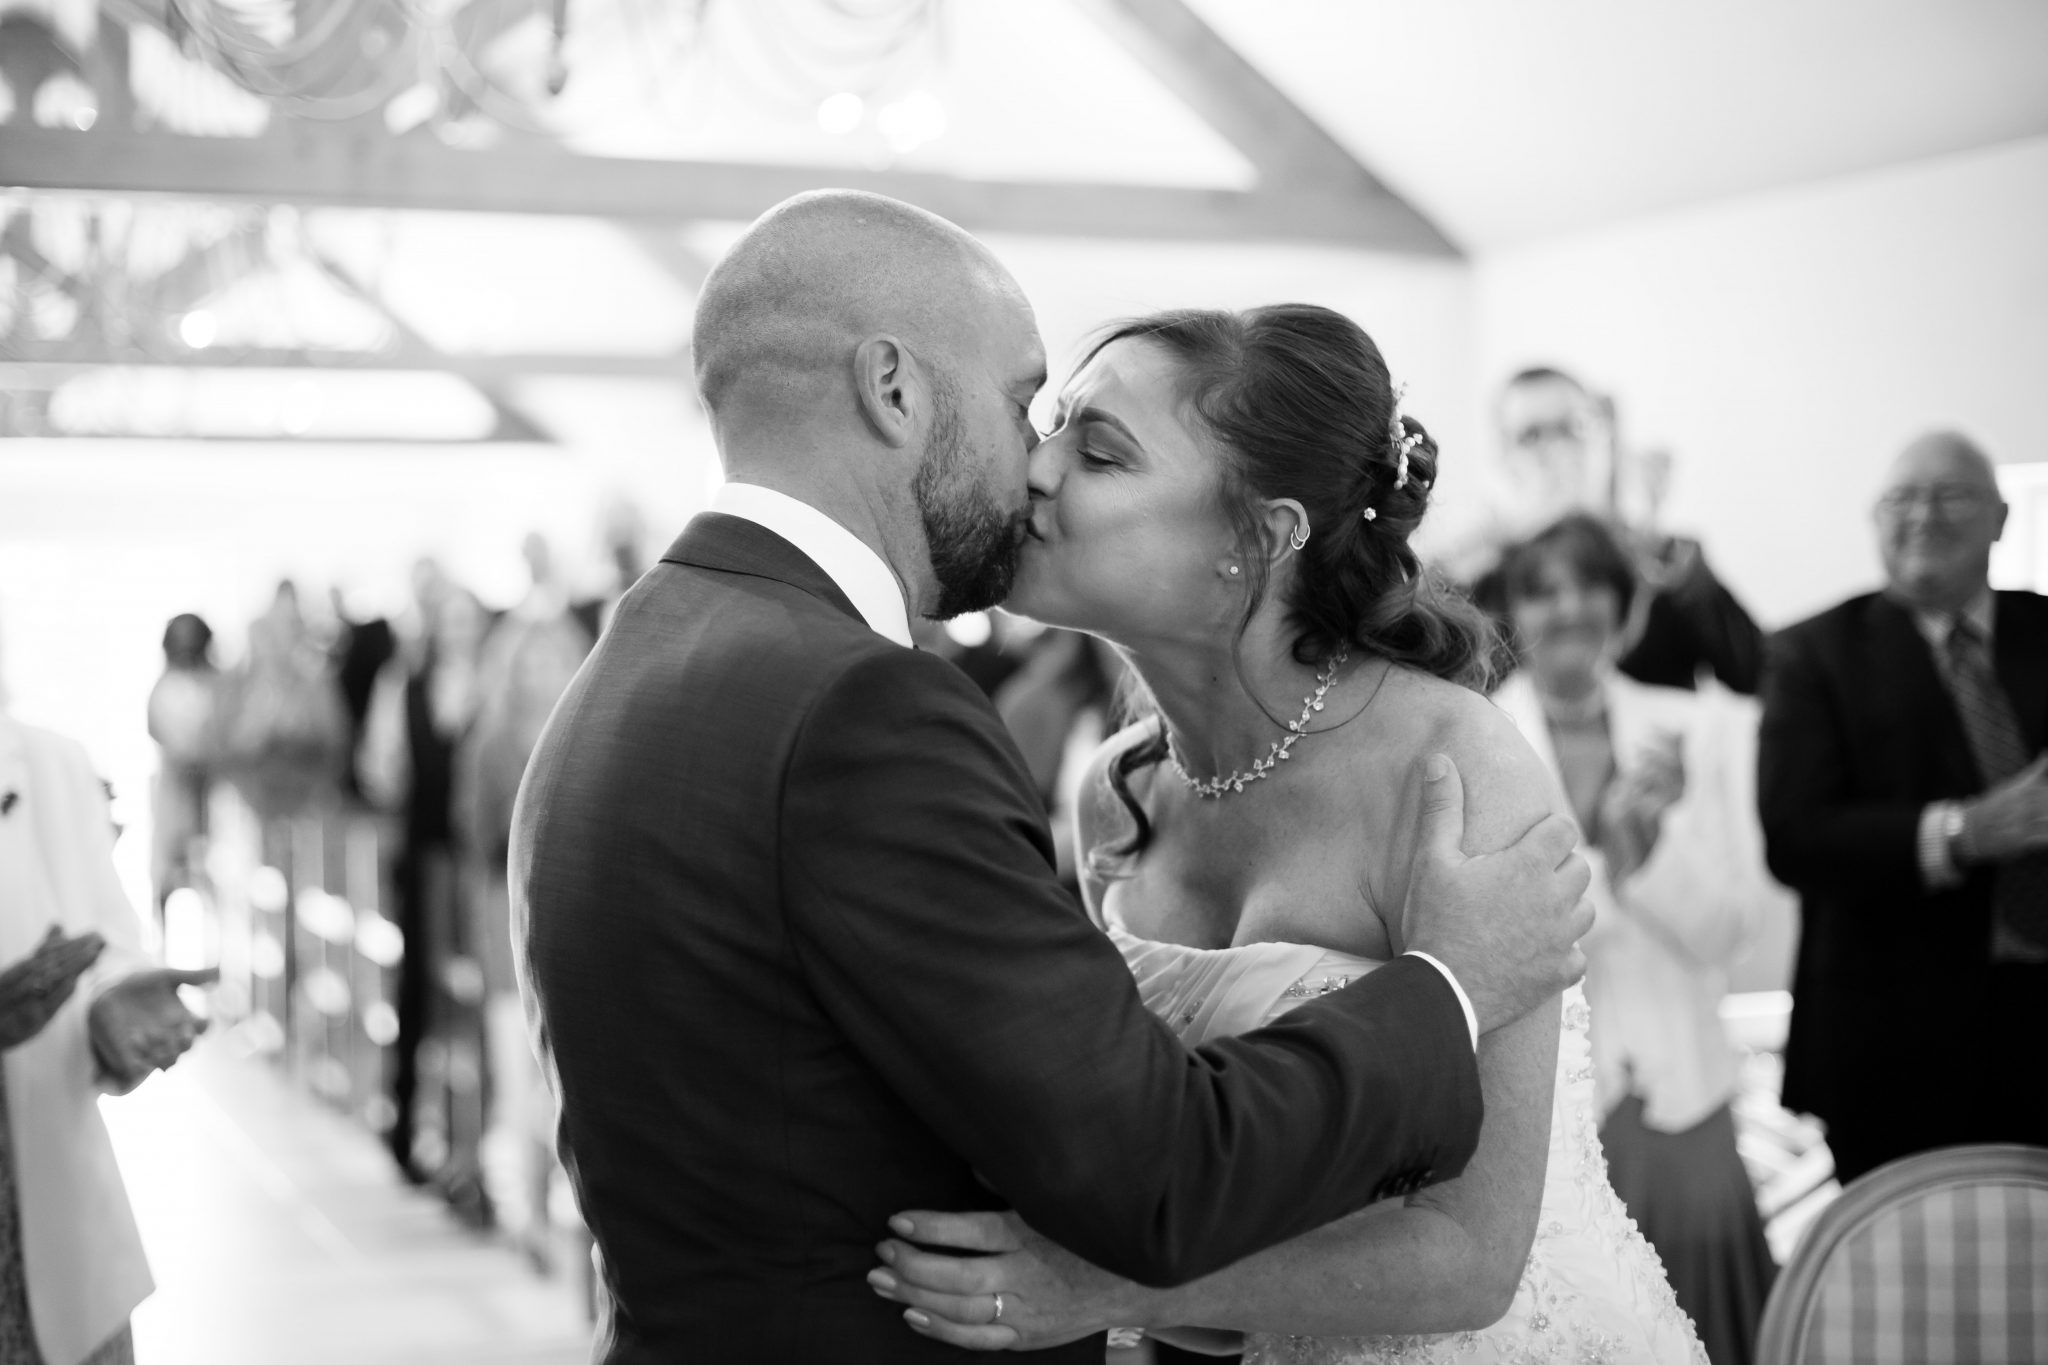 First kiss with bride and groom in ceremony at Oaks Farm, Shirley, Croydon